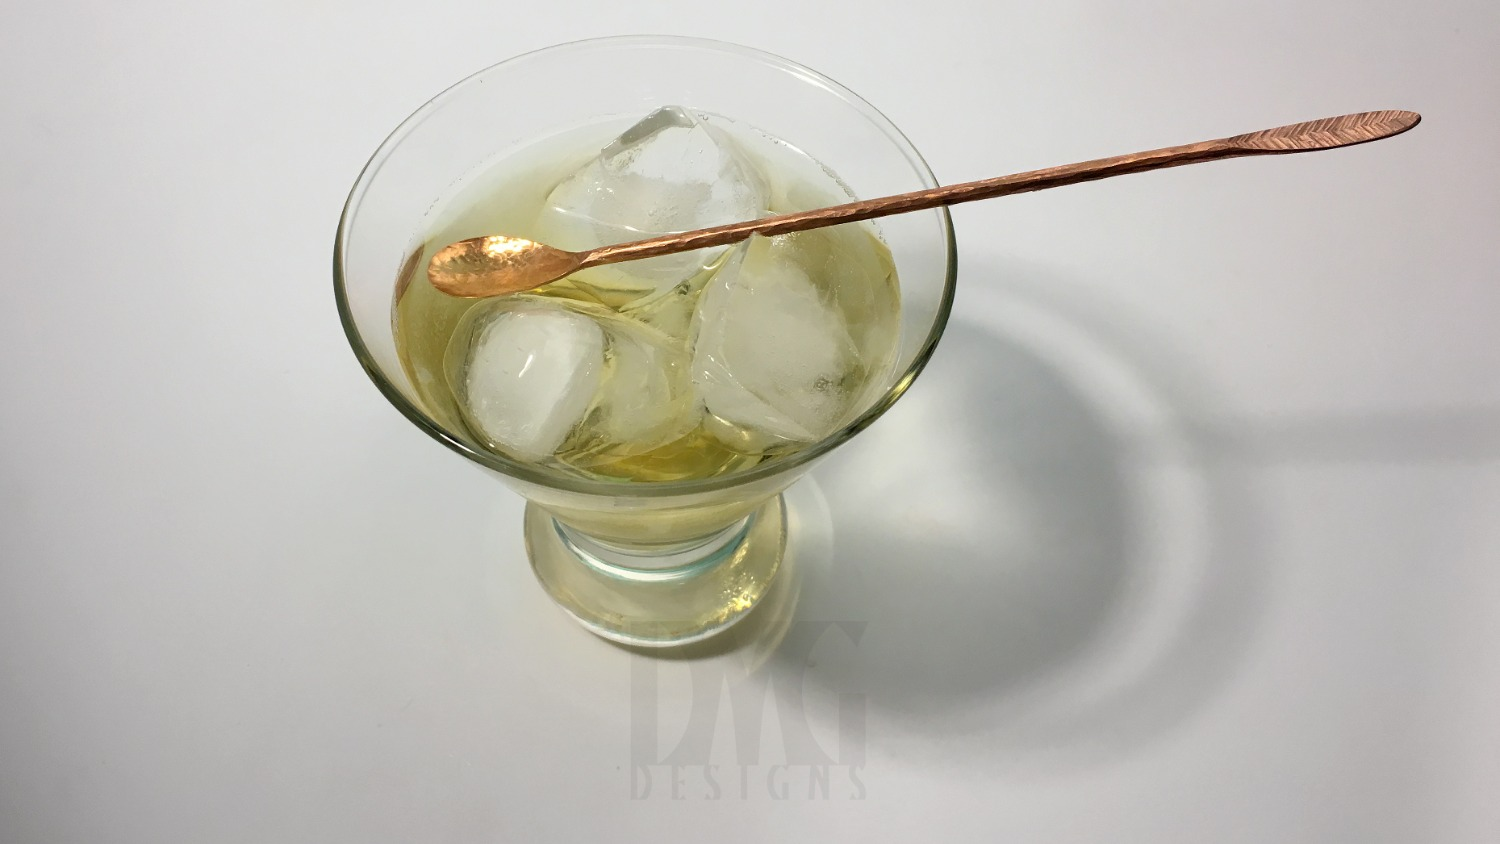 Copper Cocktail Stirrer - In Drink_edite